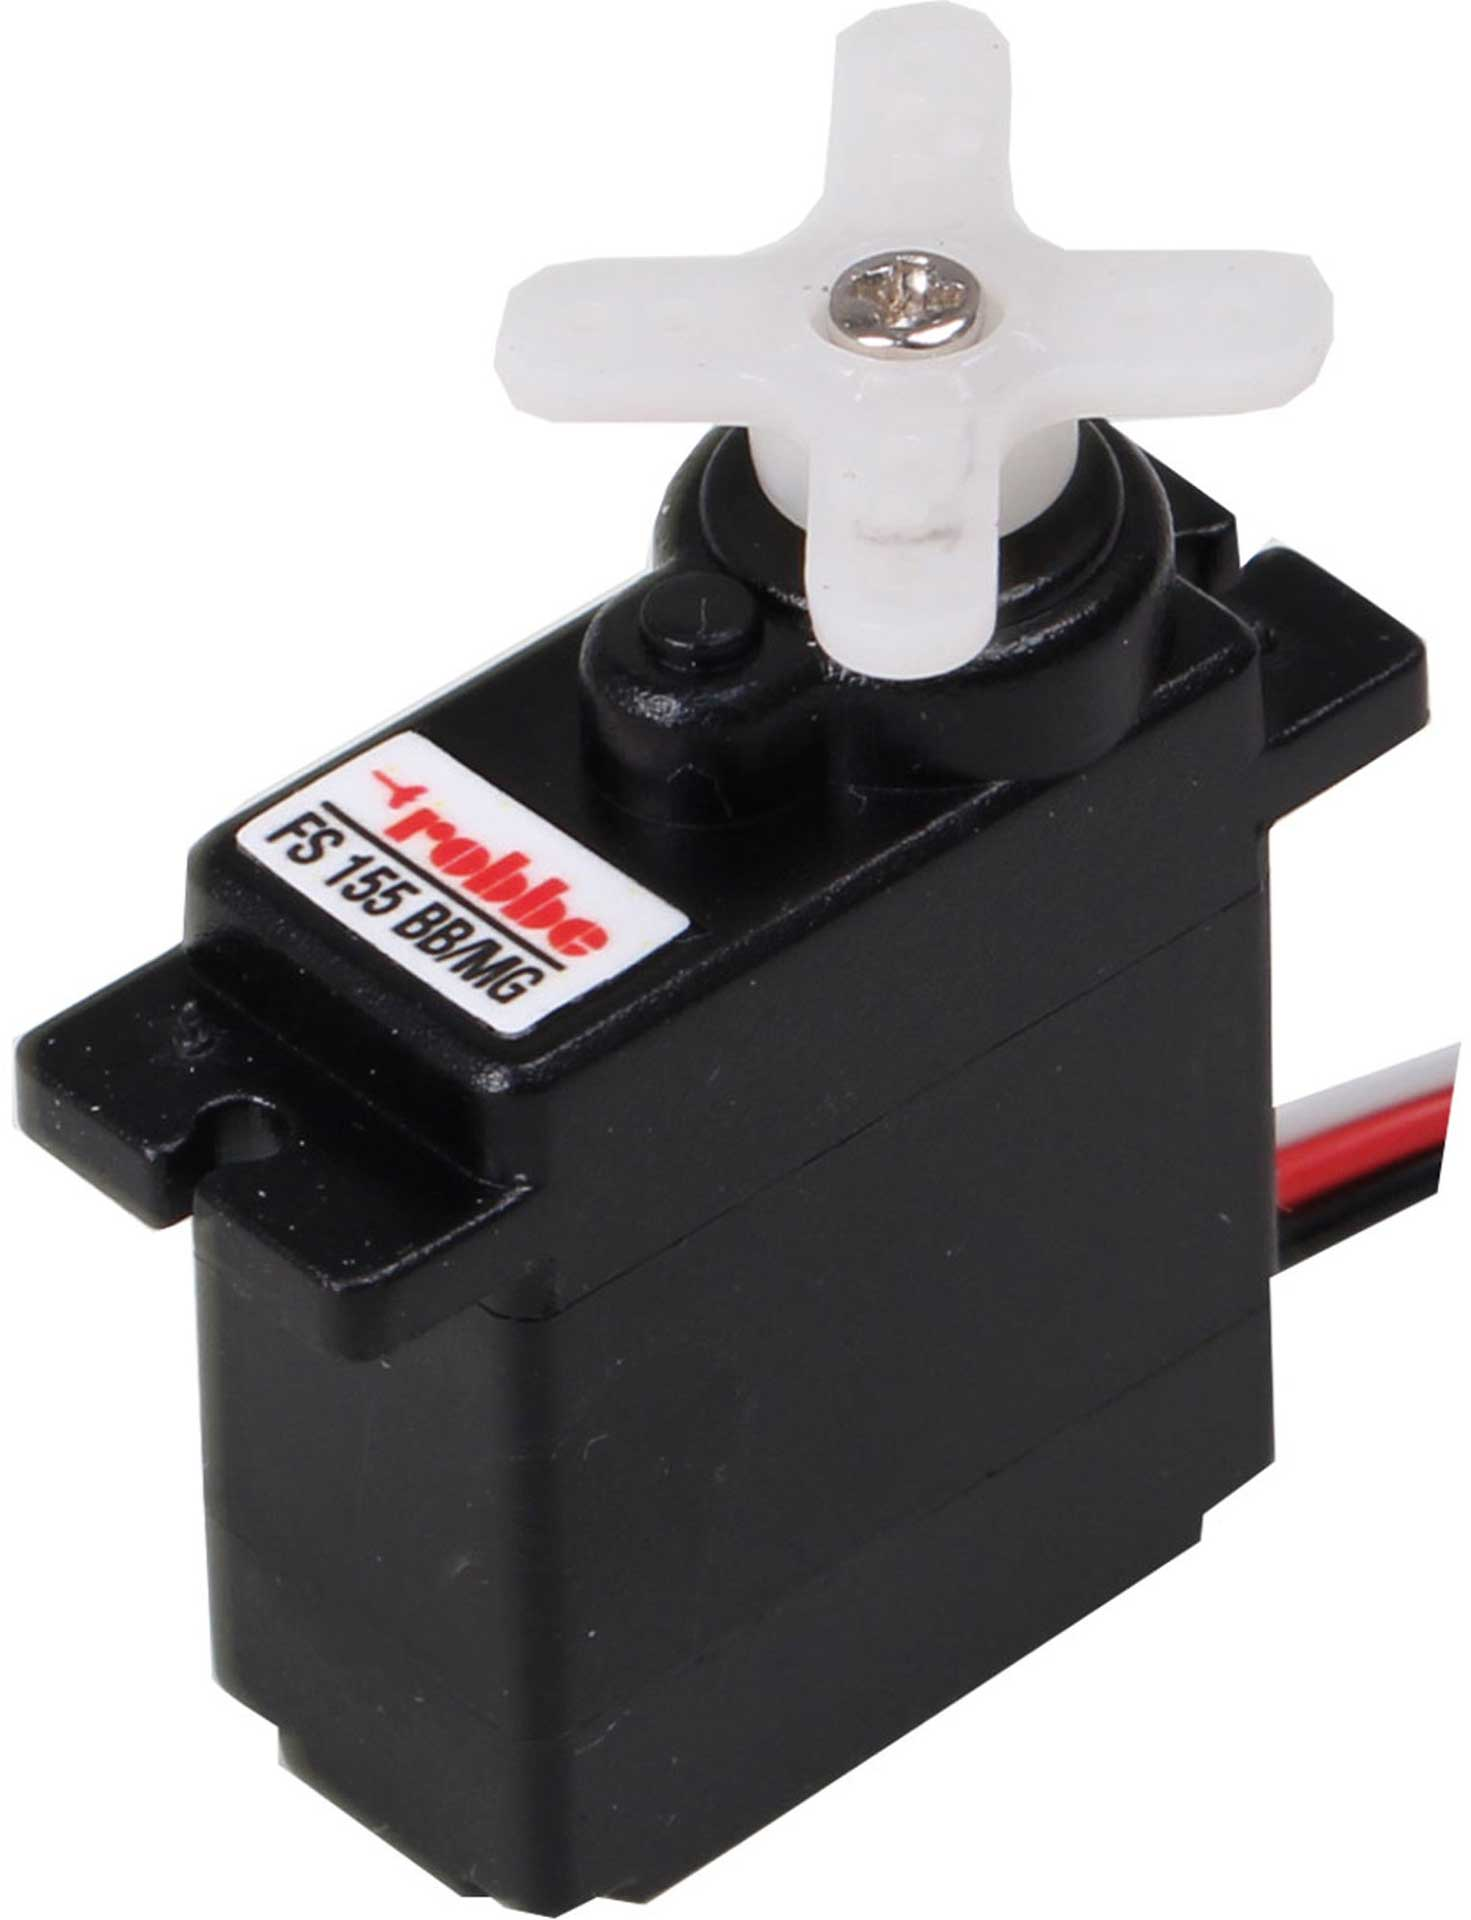 ROBBE FS 155 BB MG DIGITAL SERVO